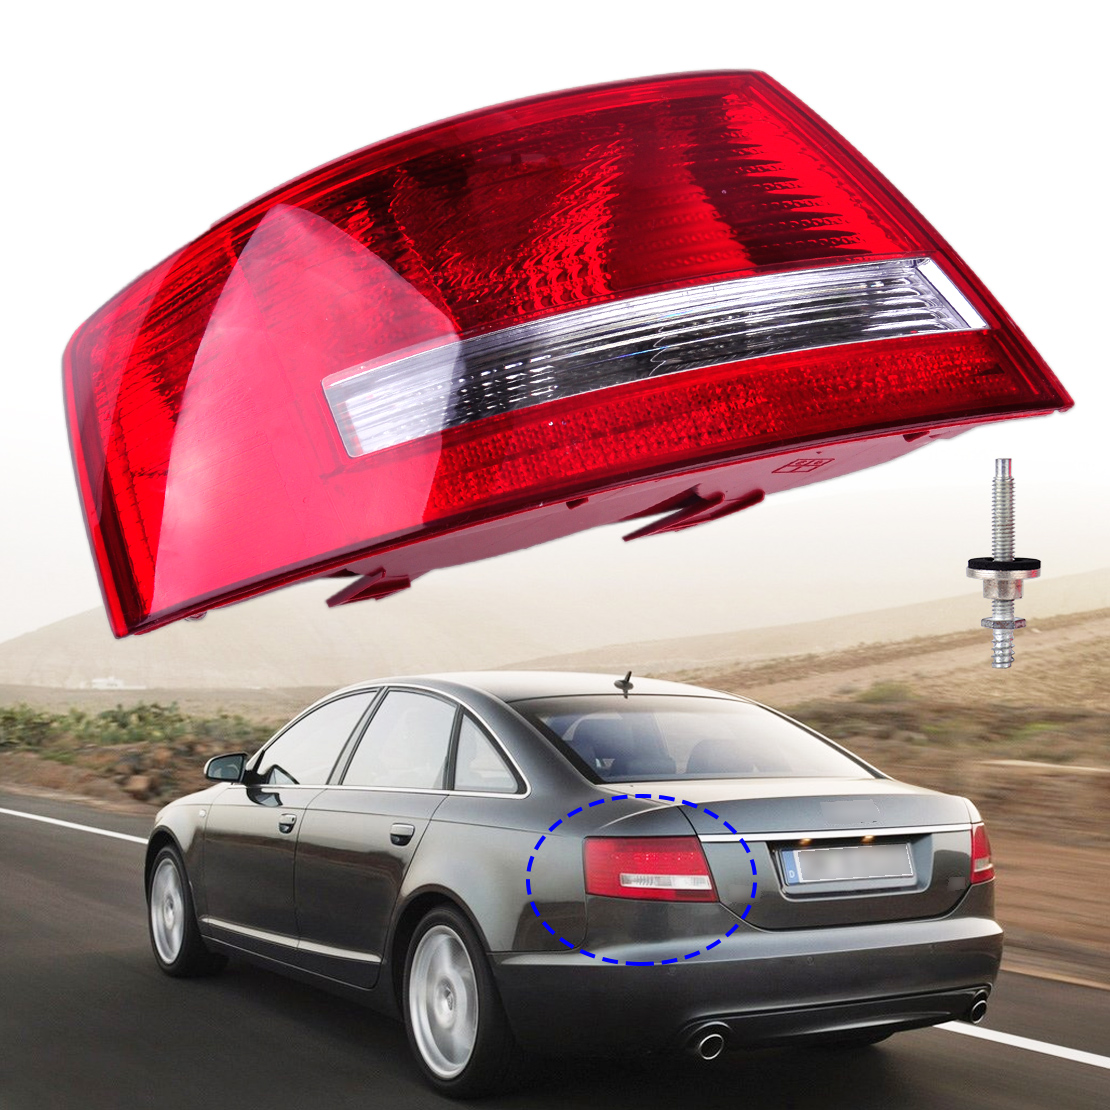 beler Left Tail Light Assembly Lamp Housing without Bulb 4F5-945-095-L 4F5 945 095 D for Audi A6 Quattro A6 2005 2006-2008 Sedan free shipping for skoda octavia sedan a5 2005 2006 2007 2008 left side rear lamp tail light